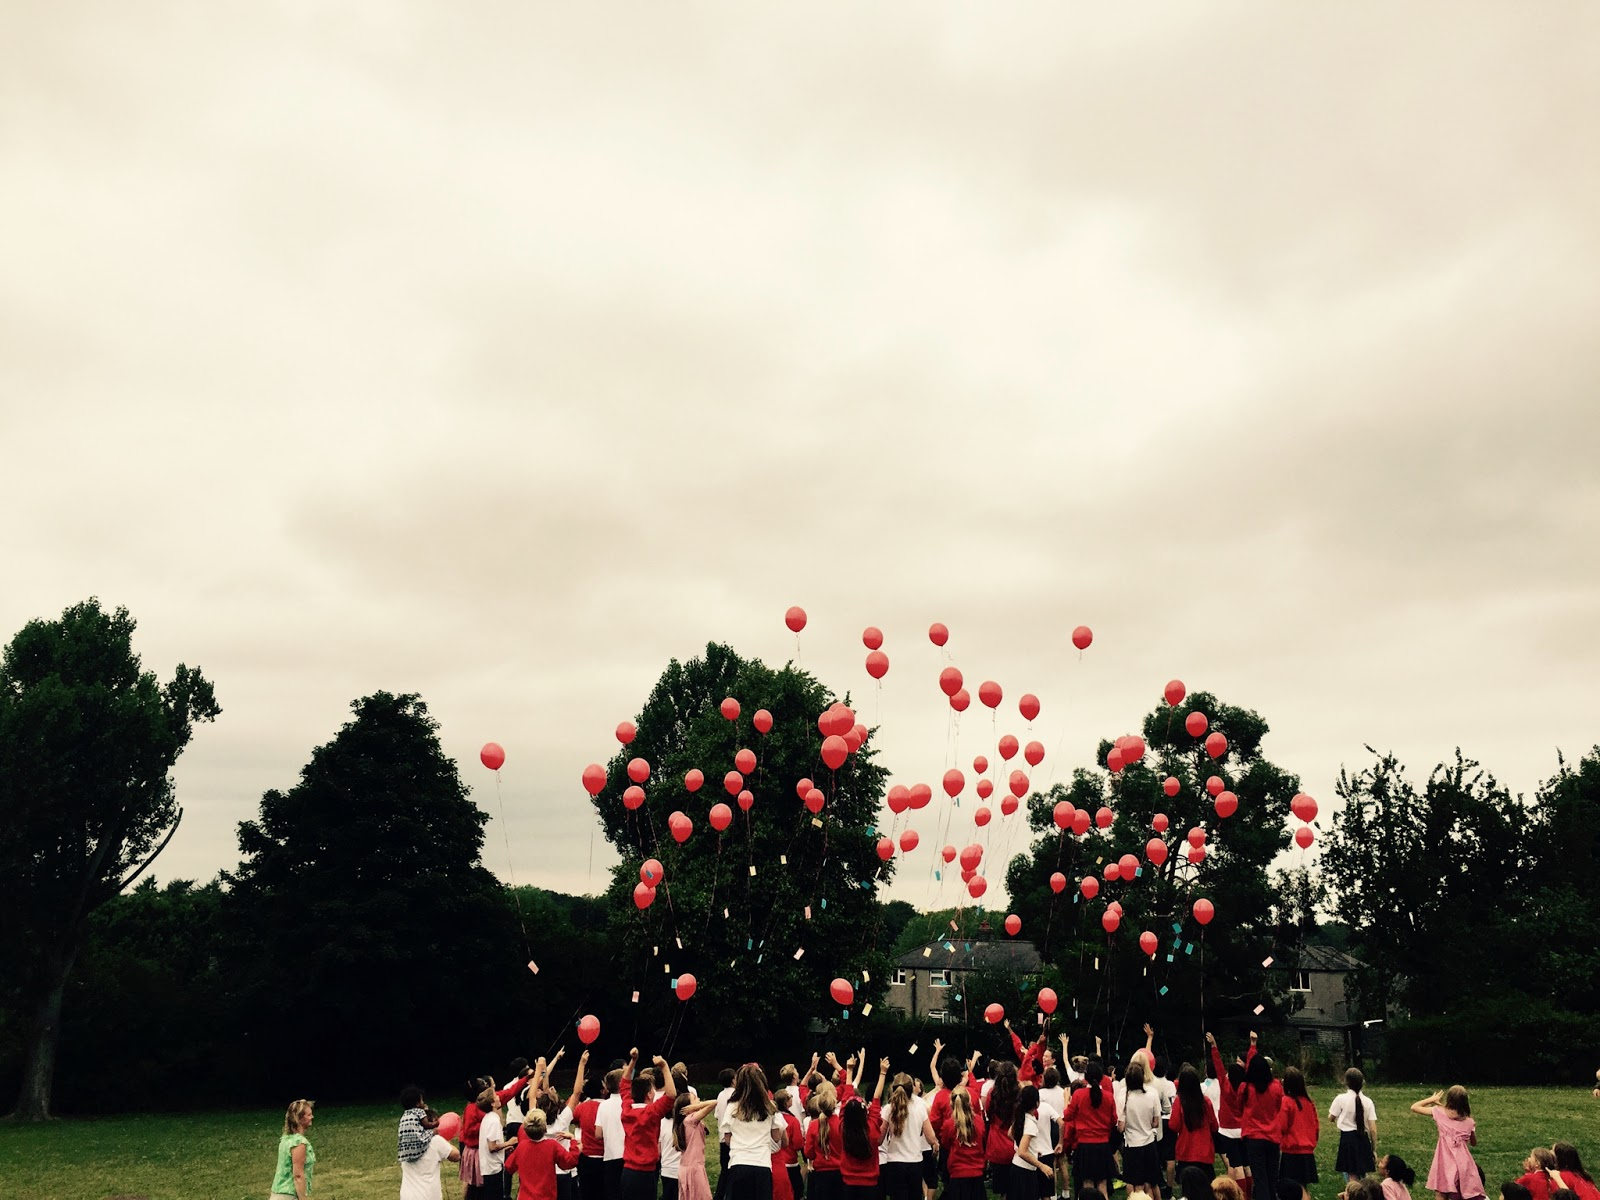 Children releasing balloons into the sky